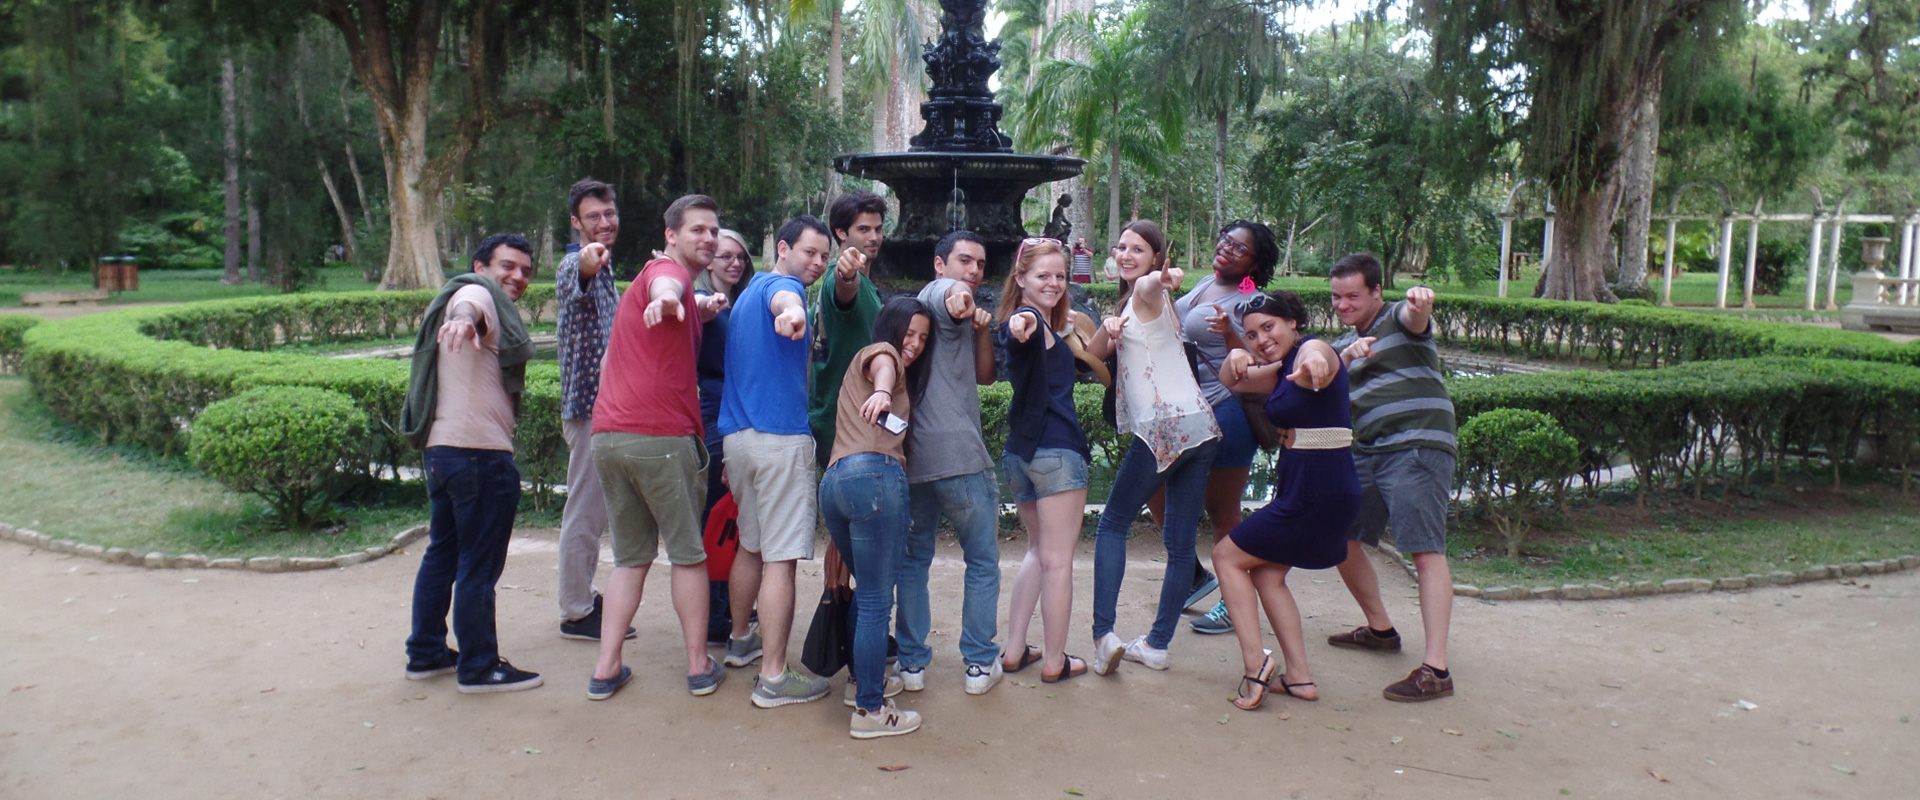 Foreigners students at Jardim Botânico learning Portuguese and having fun.